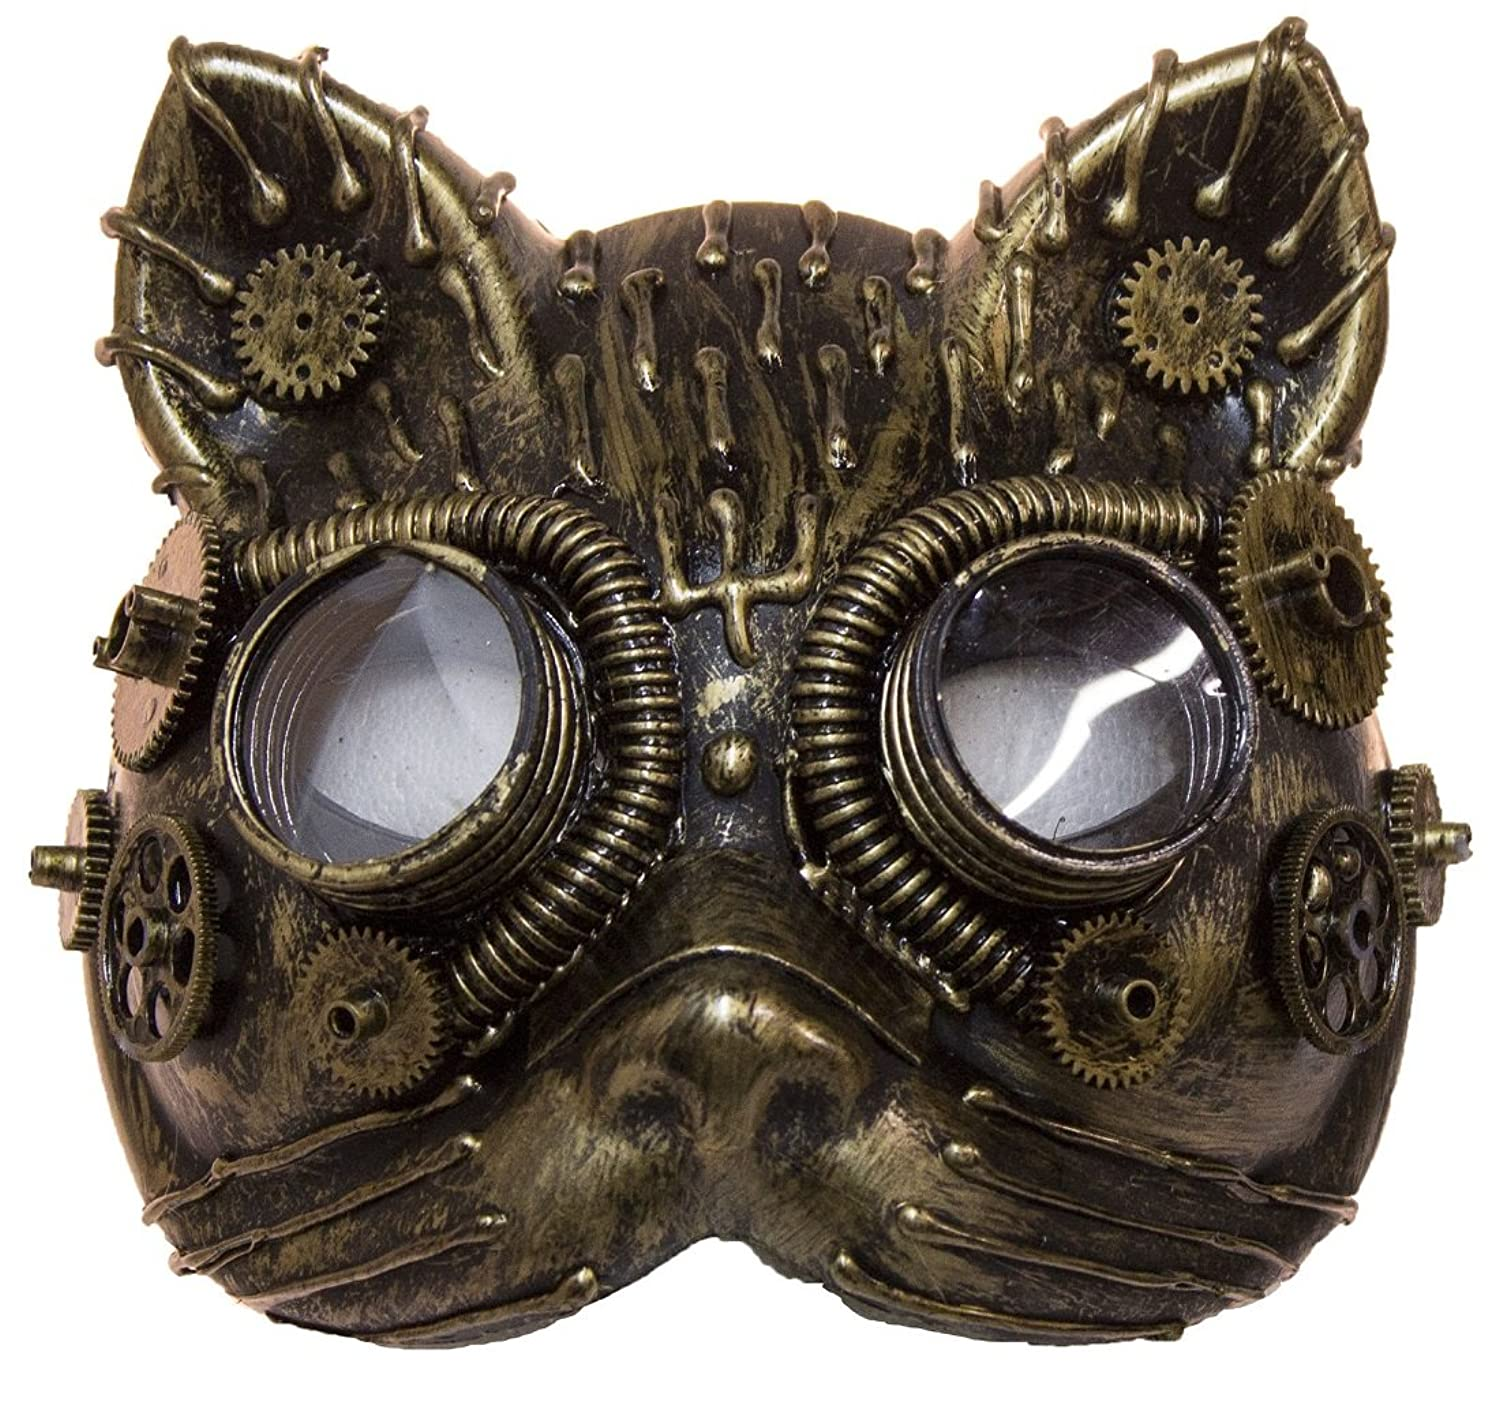 Steampunk Costume Essentials for Women Costume Accessory - Antiqued Plastic Steampunk Cat Mask w/ Built in Goggles $13.95 AT vintagedancer.com